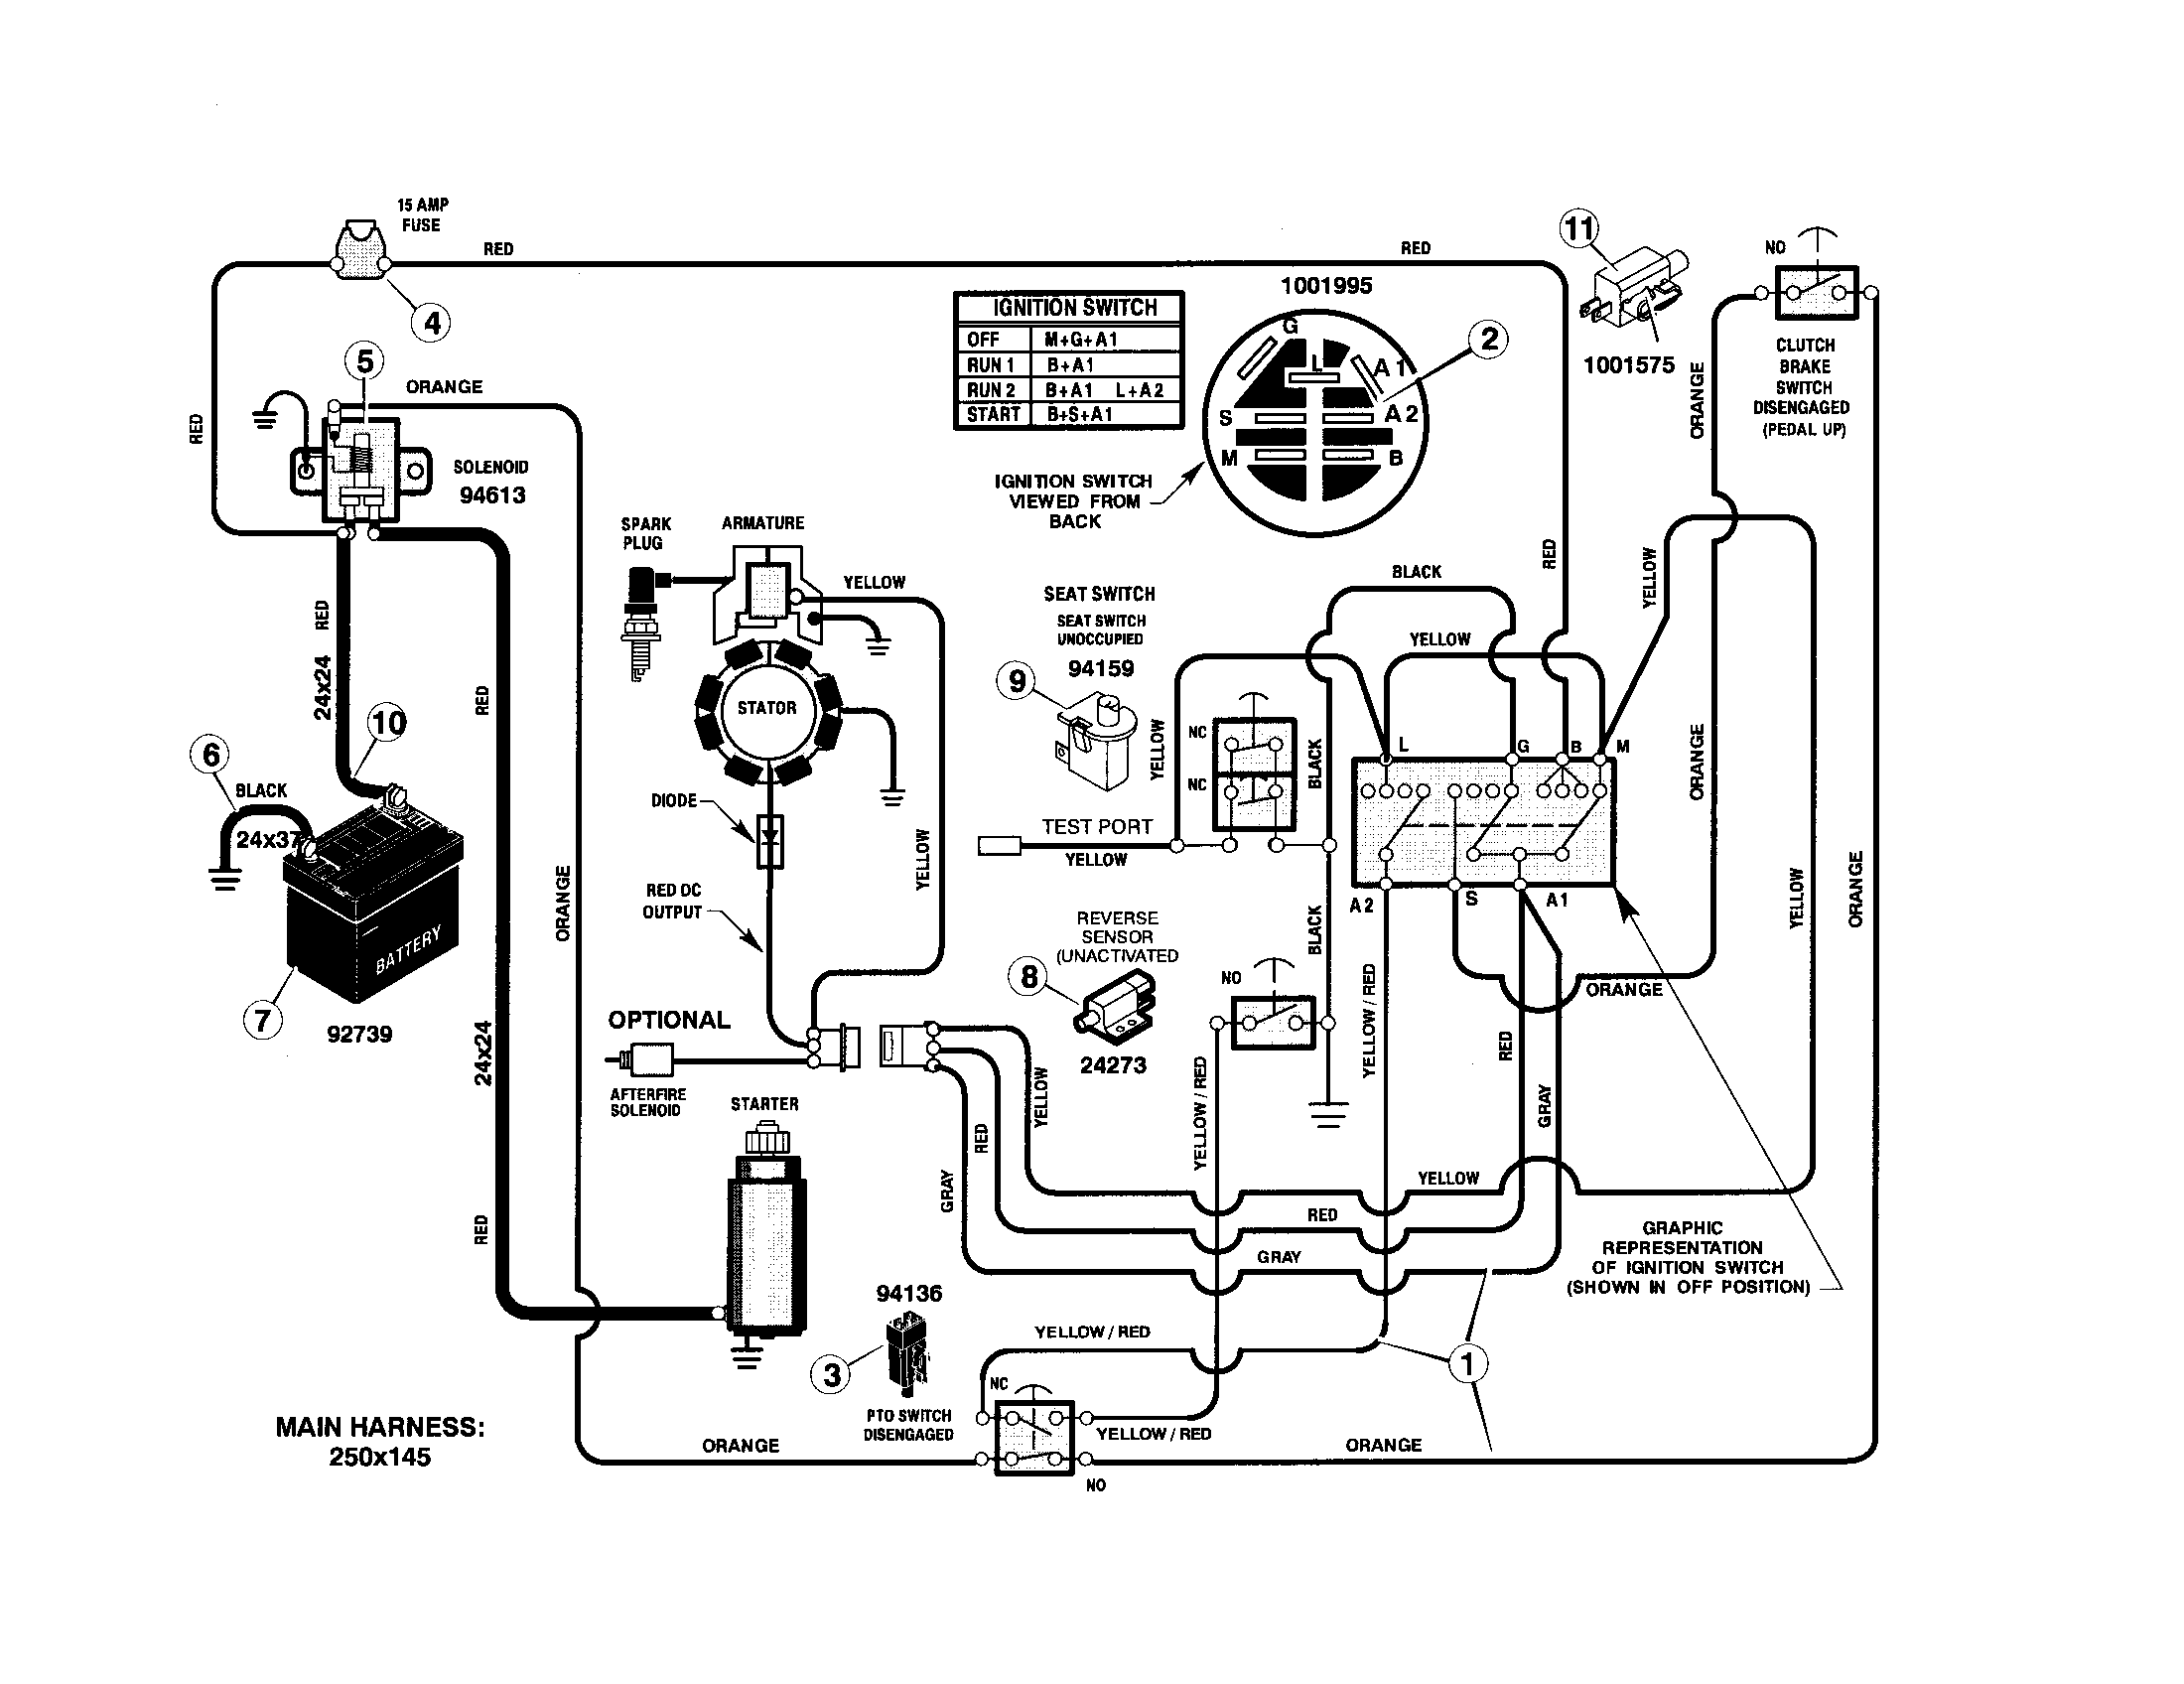 simplicity regent 14 wiring diagram stop turn tail light kubota b7510 pdf b7500 ~ odicis